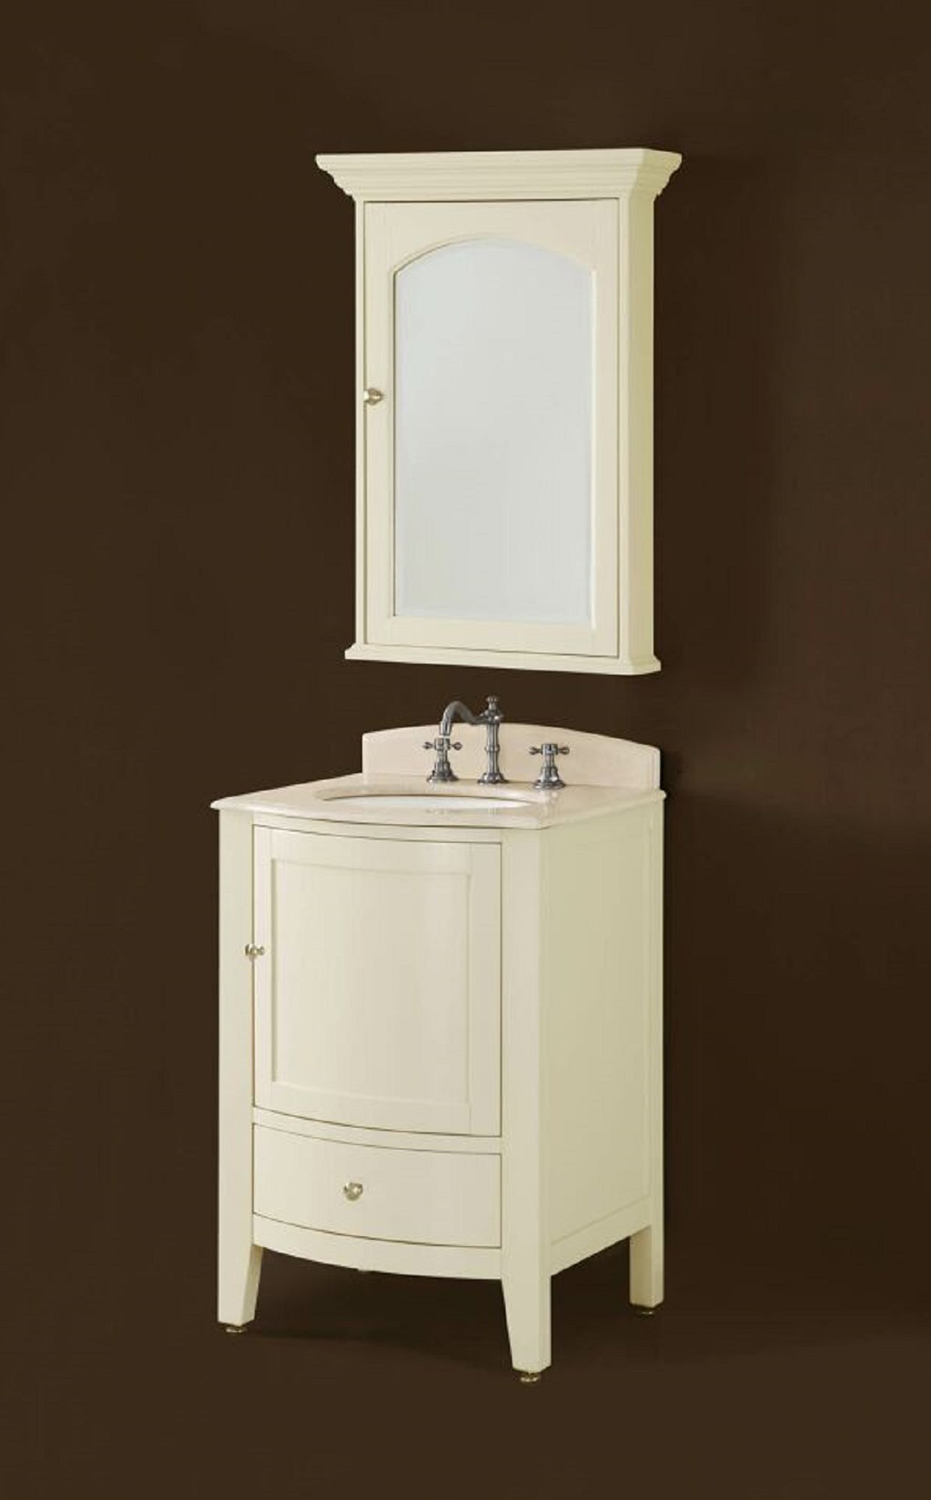 Chelsea Home Loft 24-inch Vanity with Mirror - Ivory